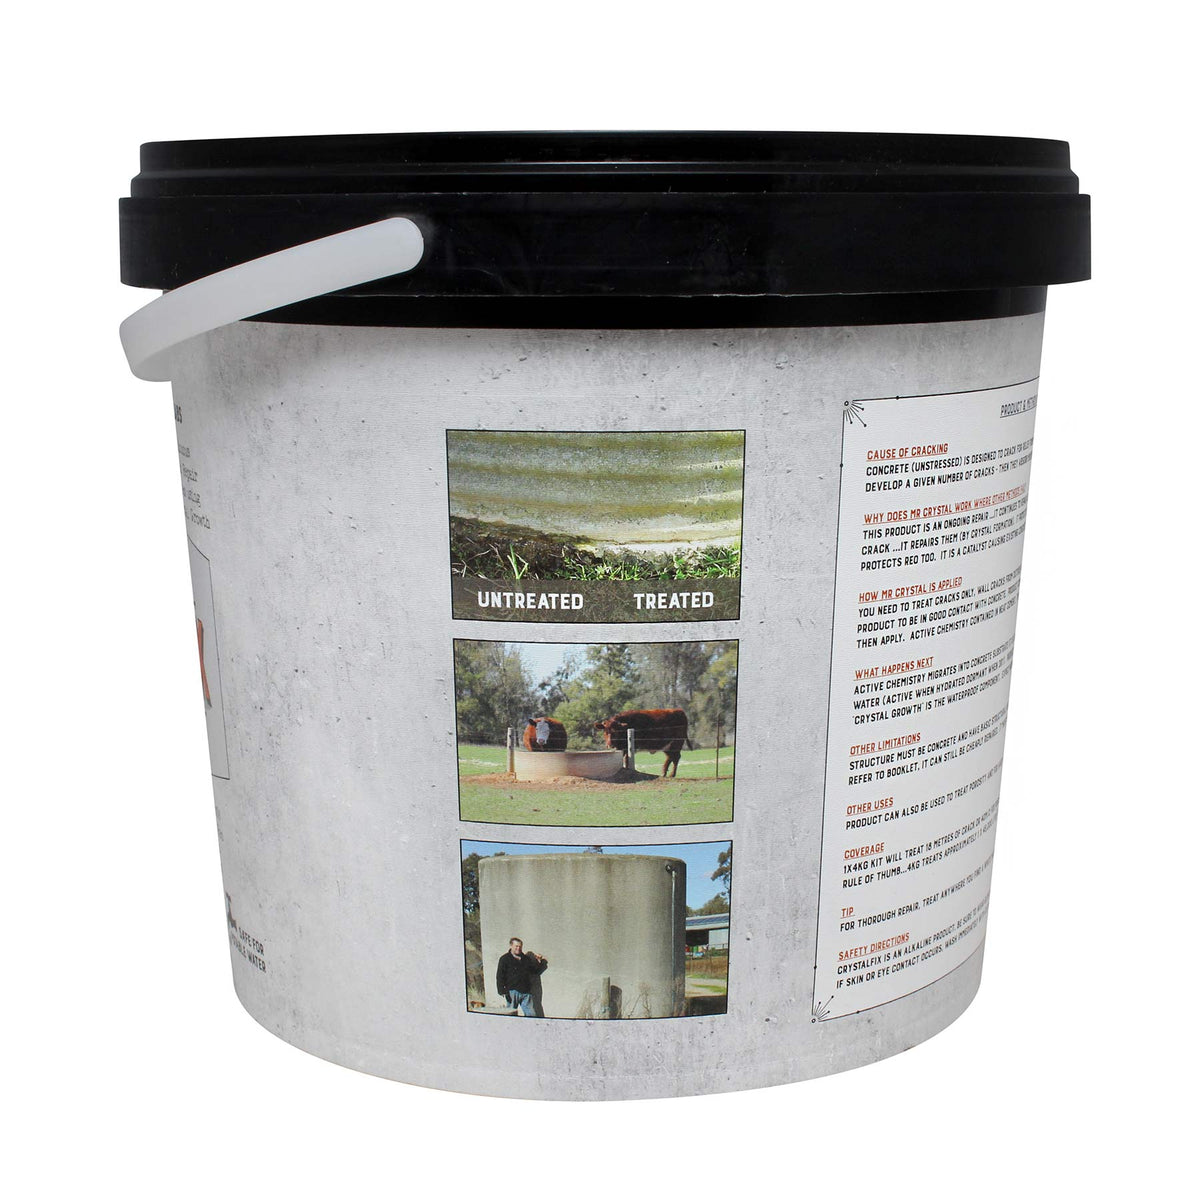 Mr Crystal Concrete Tank & Trough Repair Kit